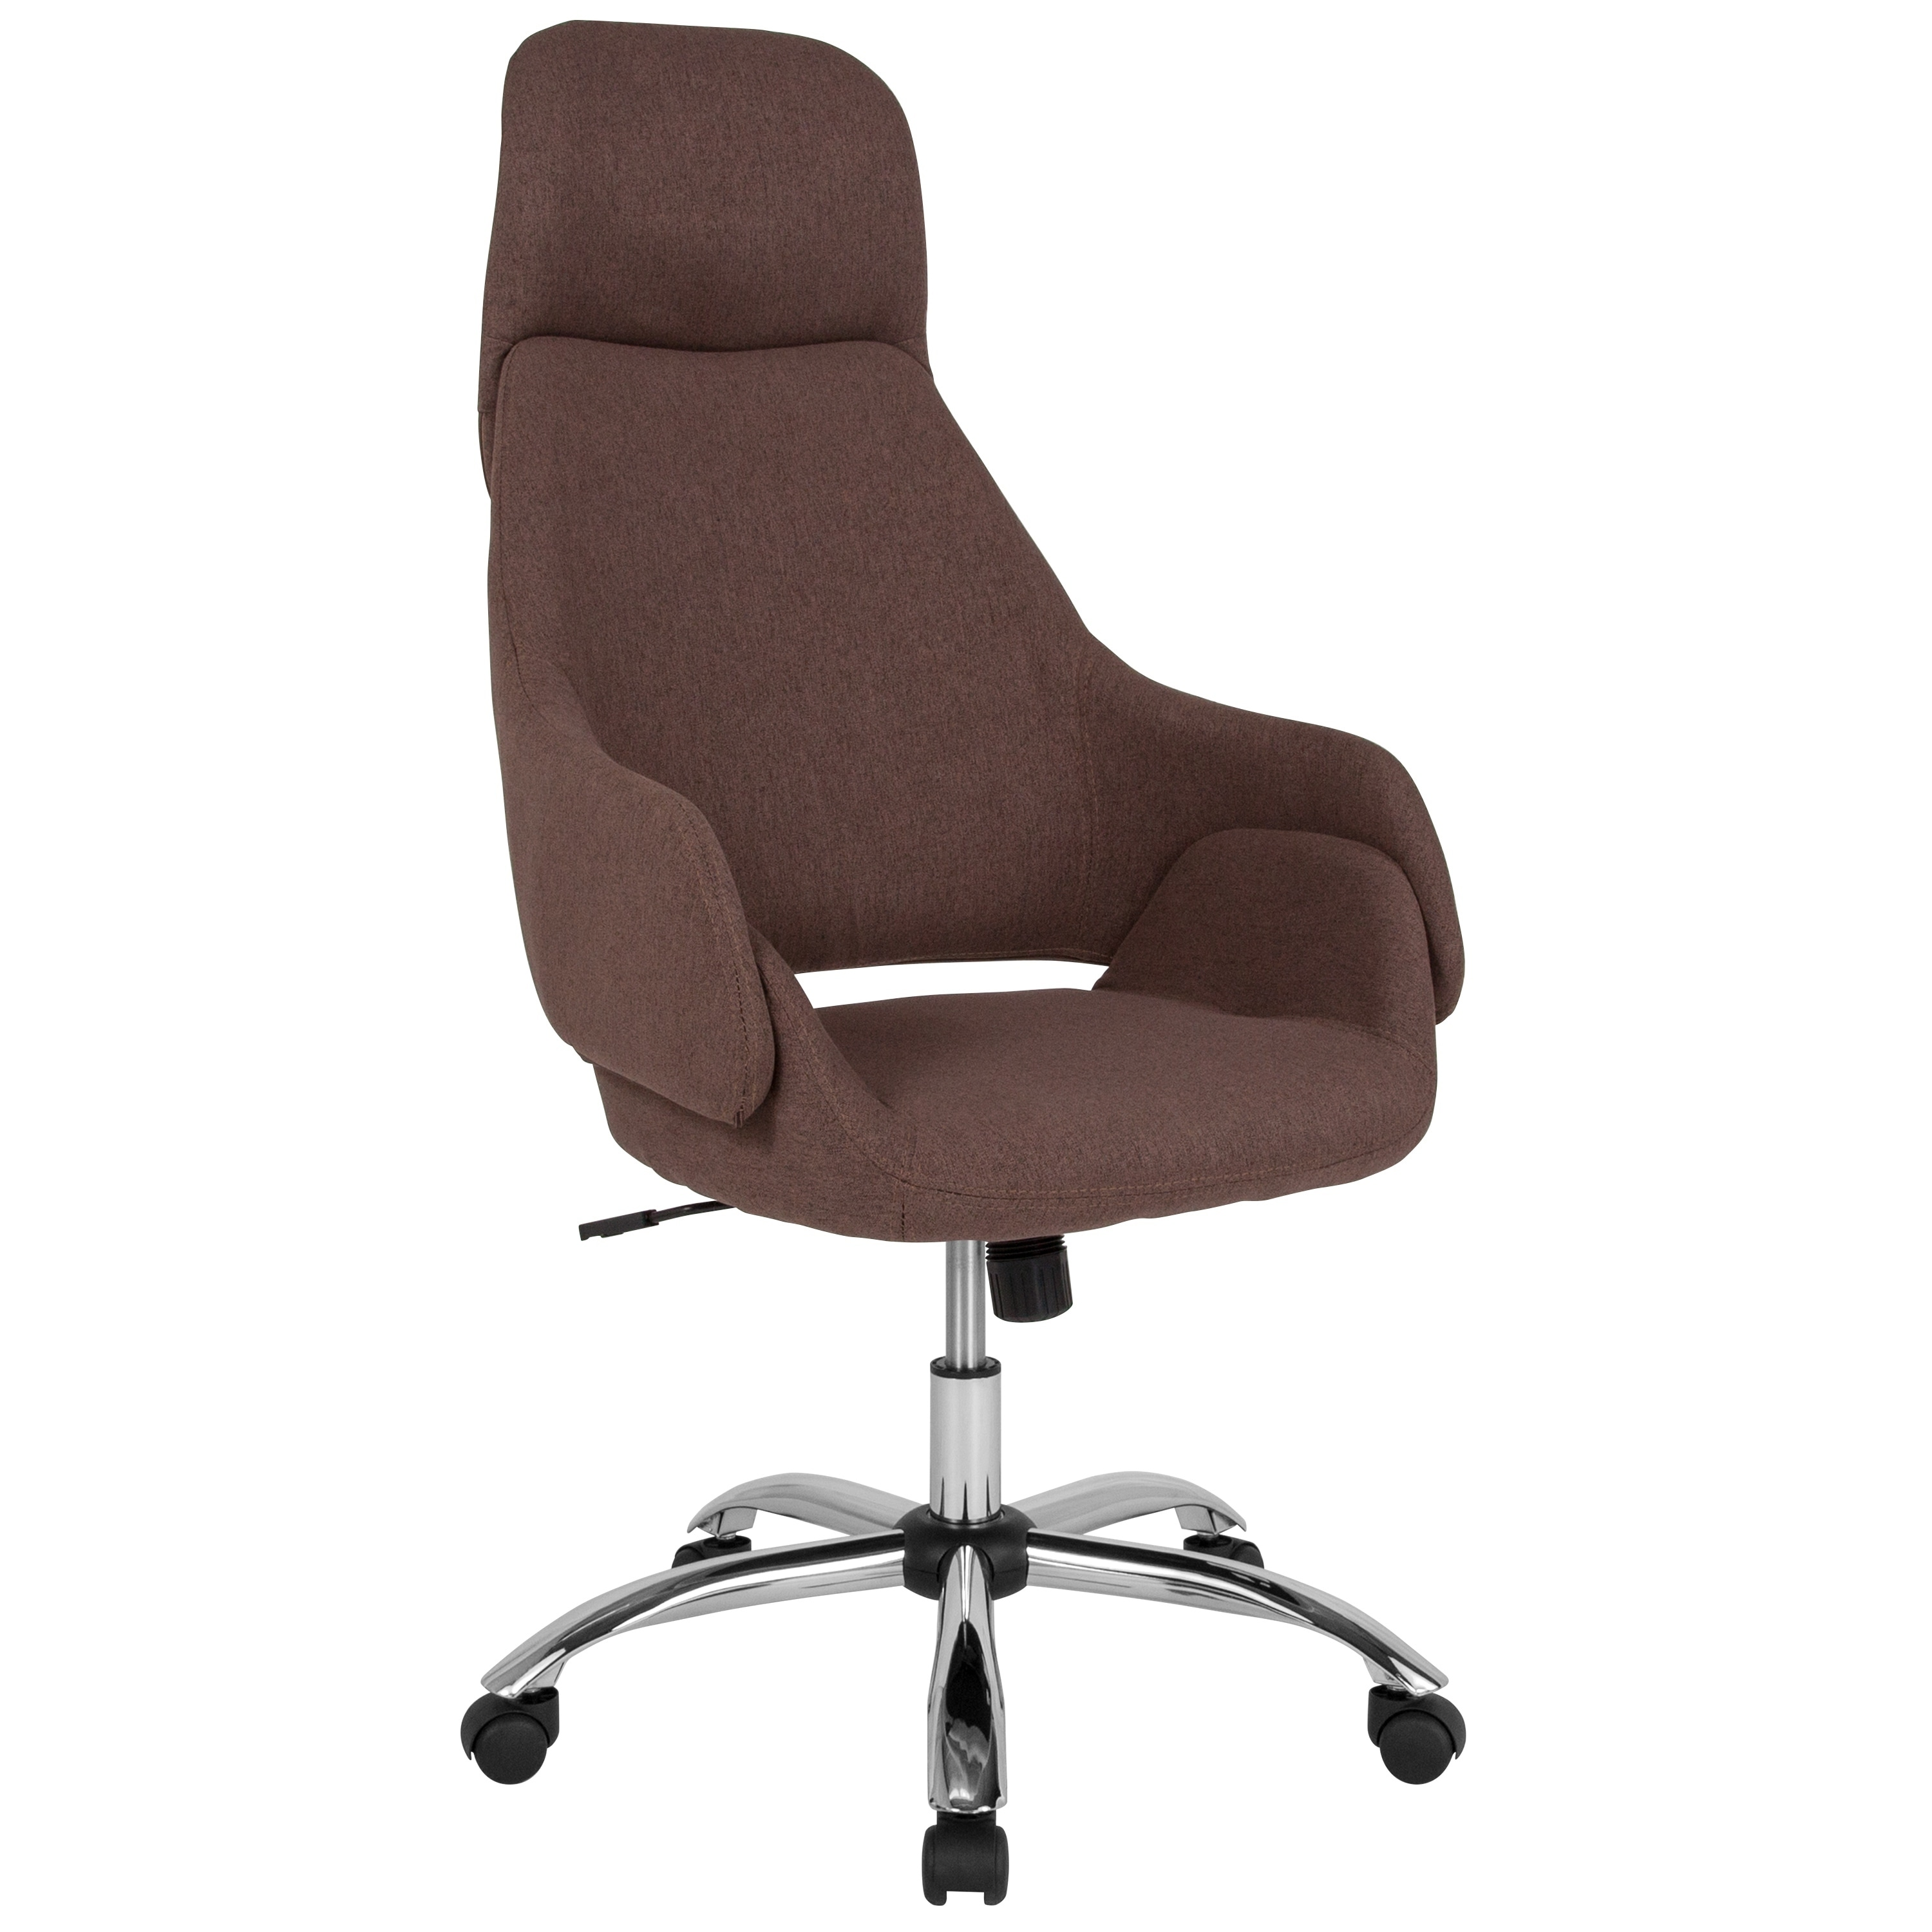 Upholstered Swivel Chairs Details About Lancaster Home Metal Upholstered Open Back Swivel Chair